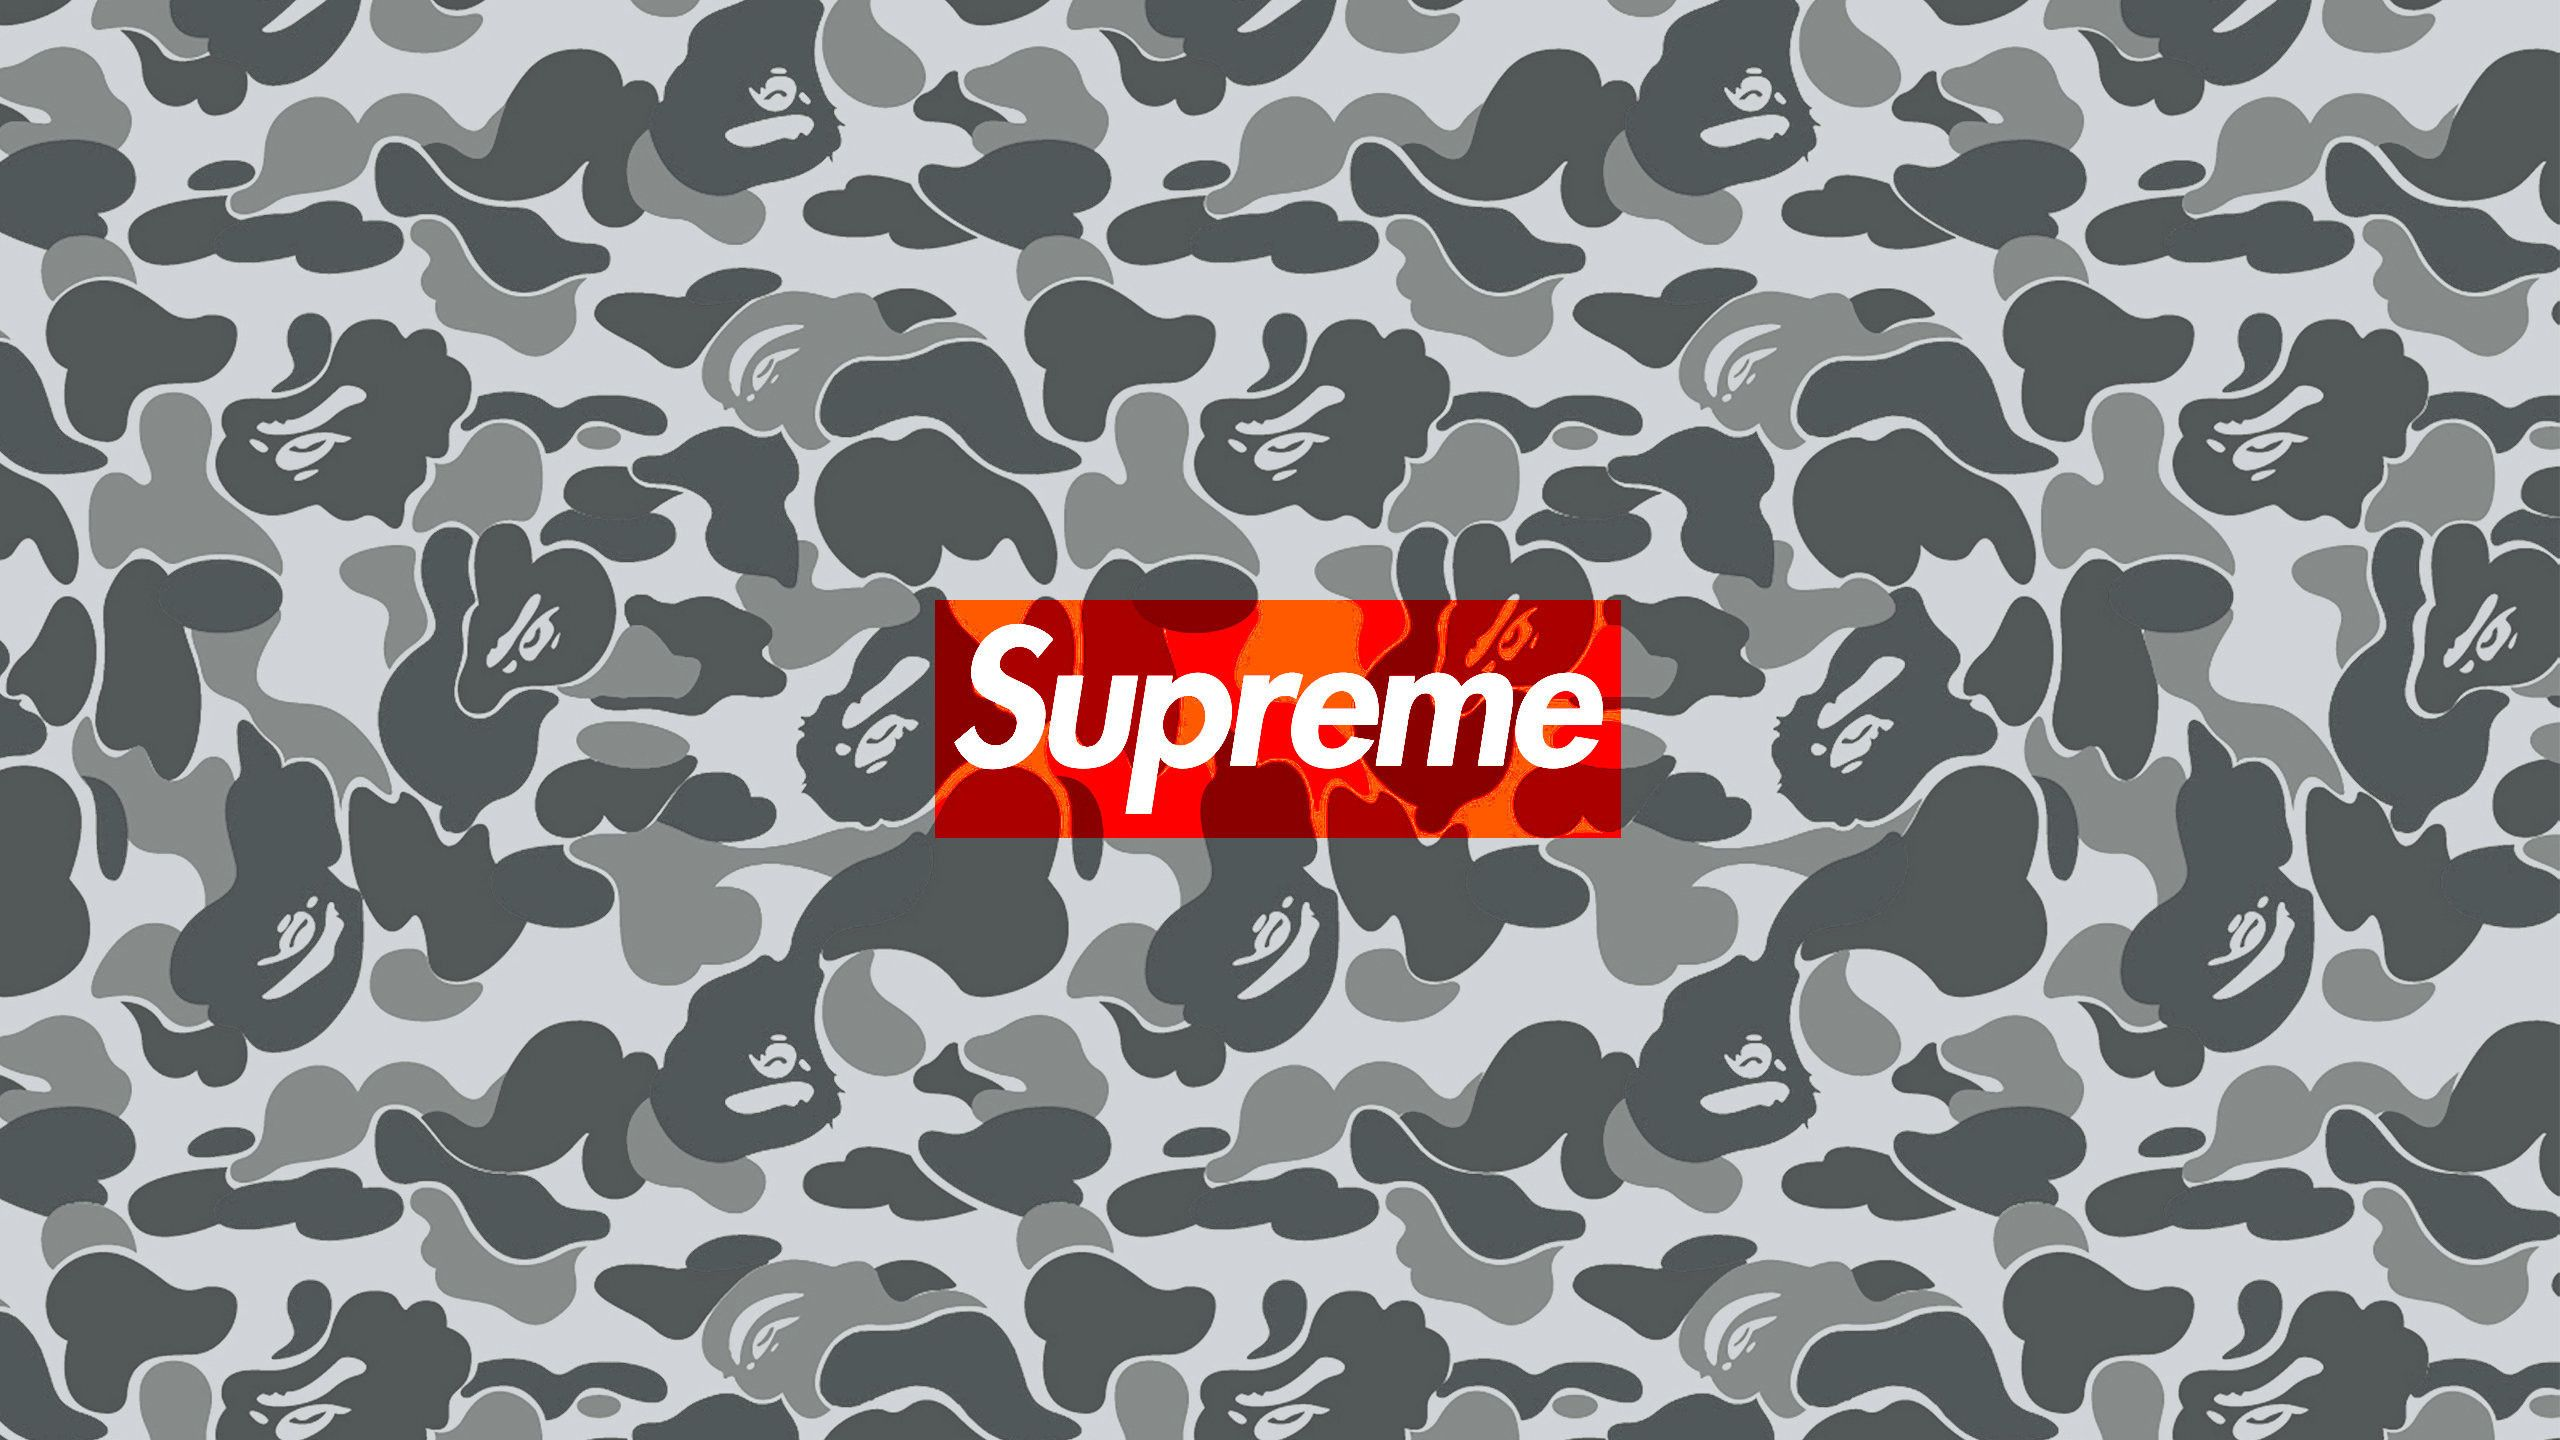 2560x1440 2560x1440 Download the Supreme Bape Camo wallpaper below for your ...